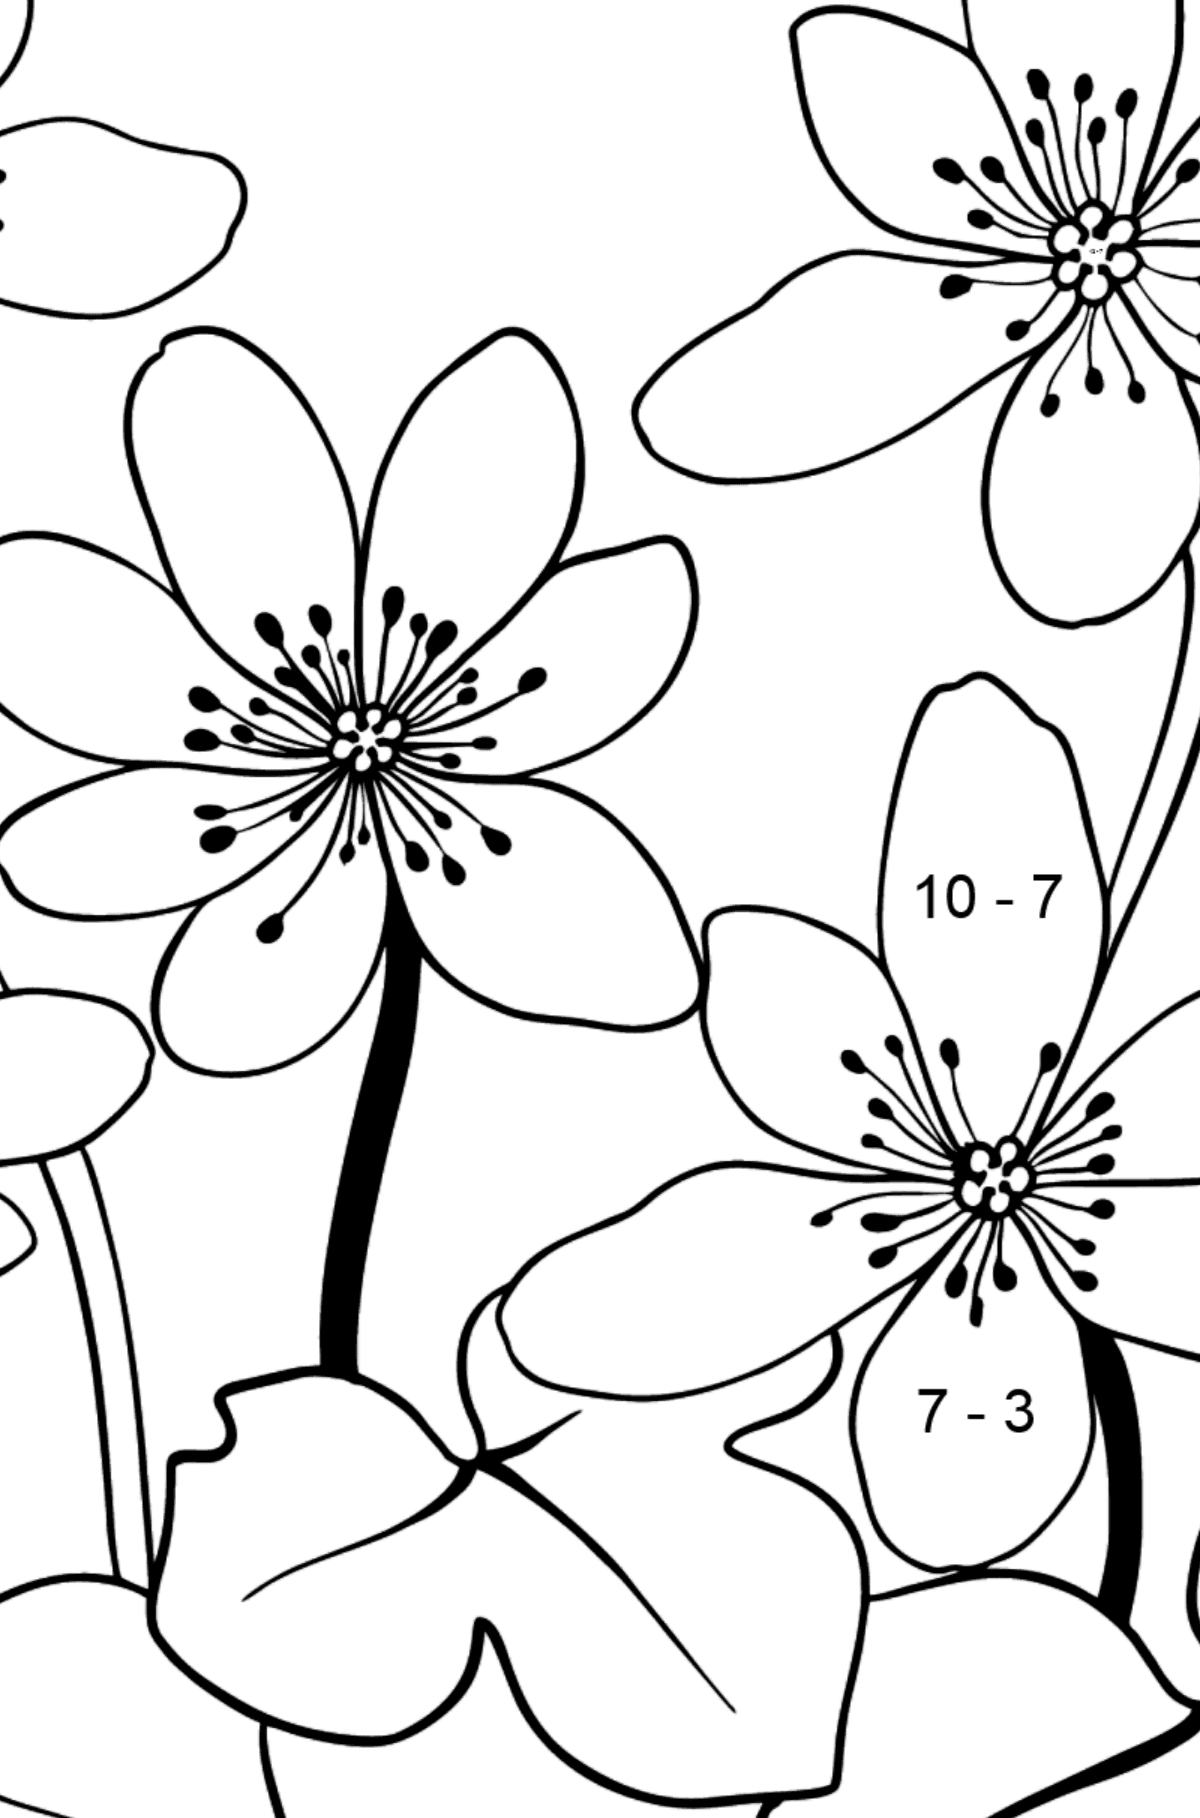 Flower Coloring Page - A Yellow and Orange Hepatica - Math Coloring - Subtraction for Kids